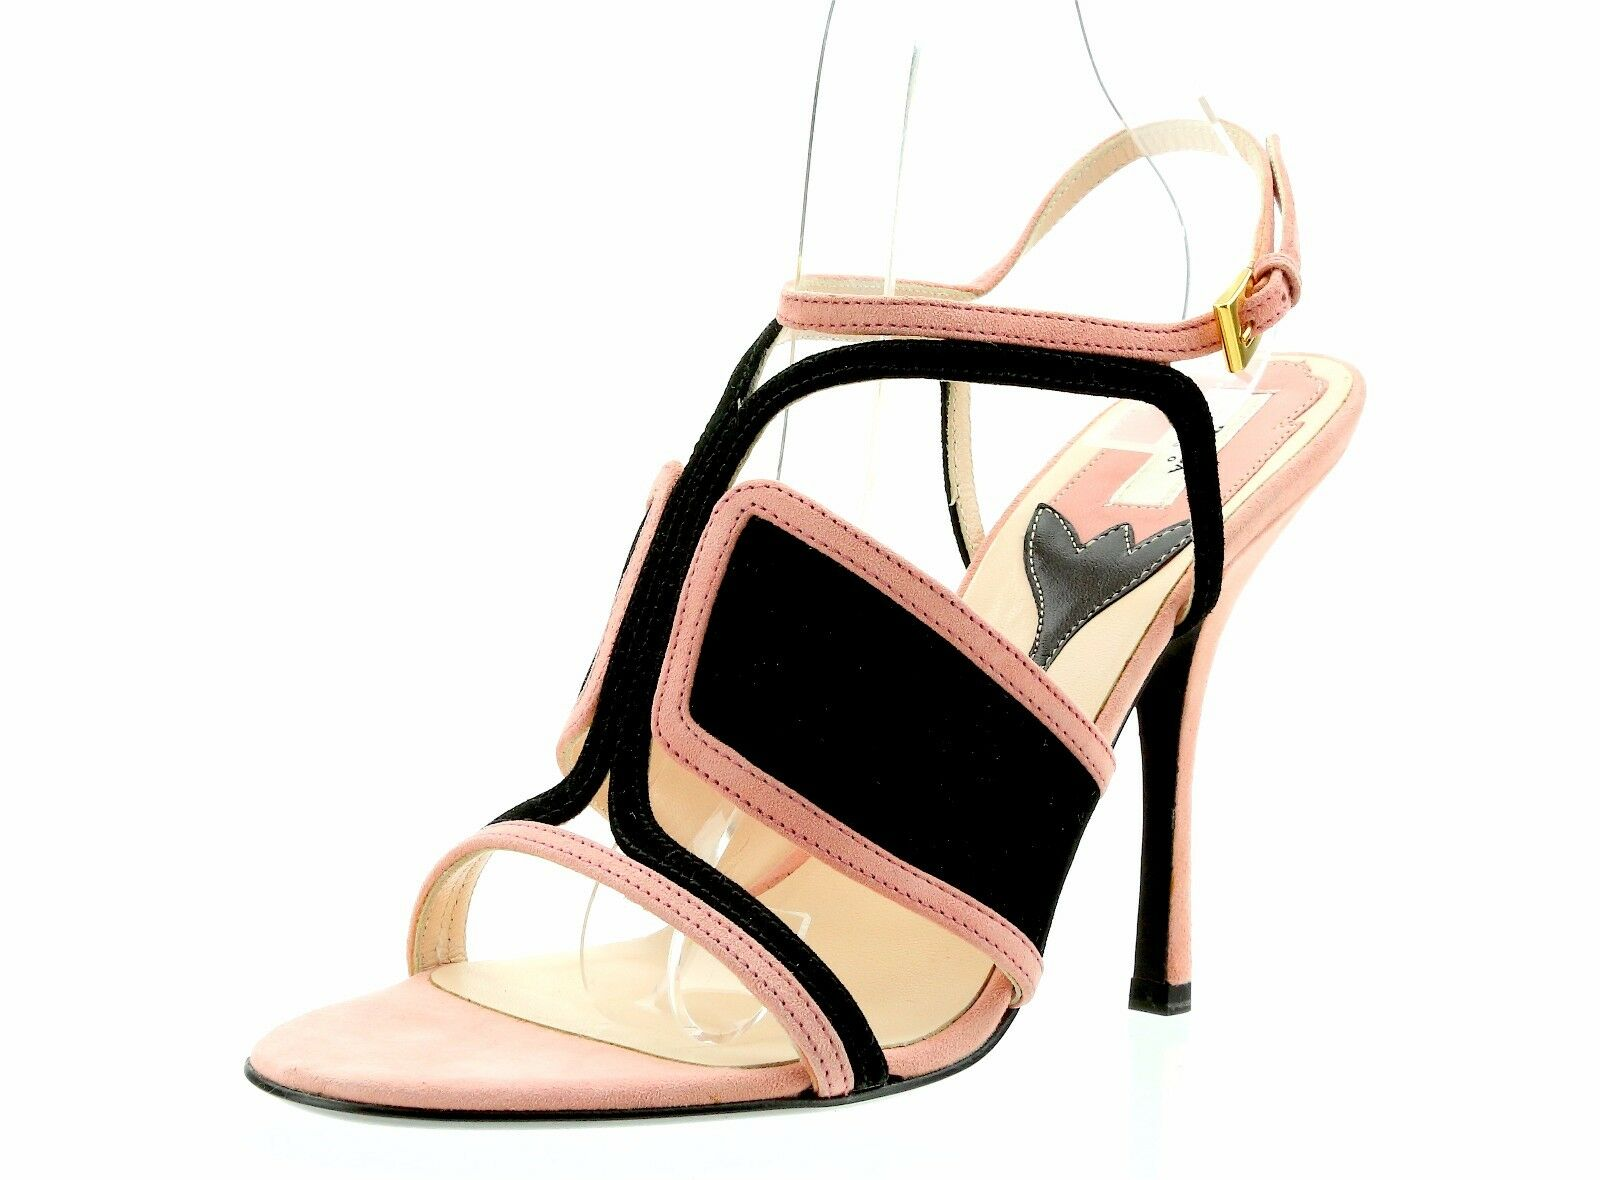 PRADA Milano Light Pink Suede Ankle Strap Sandals 3050 Size 38 EU NEW